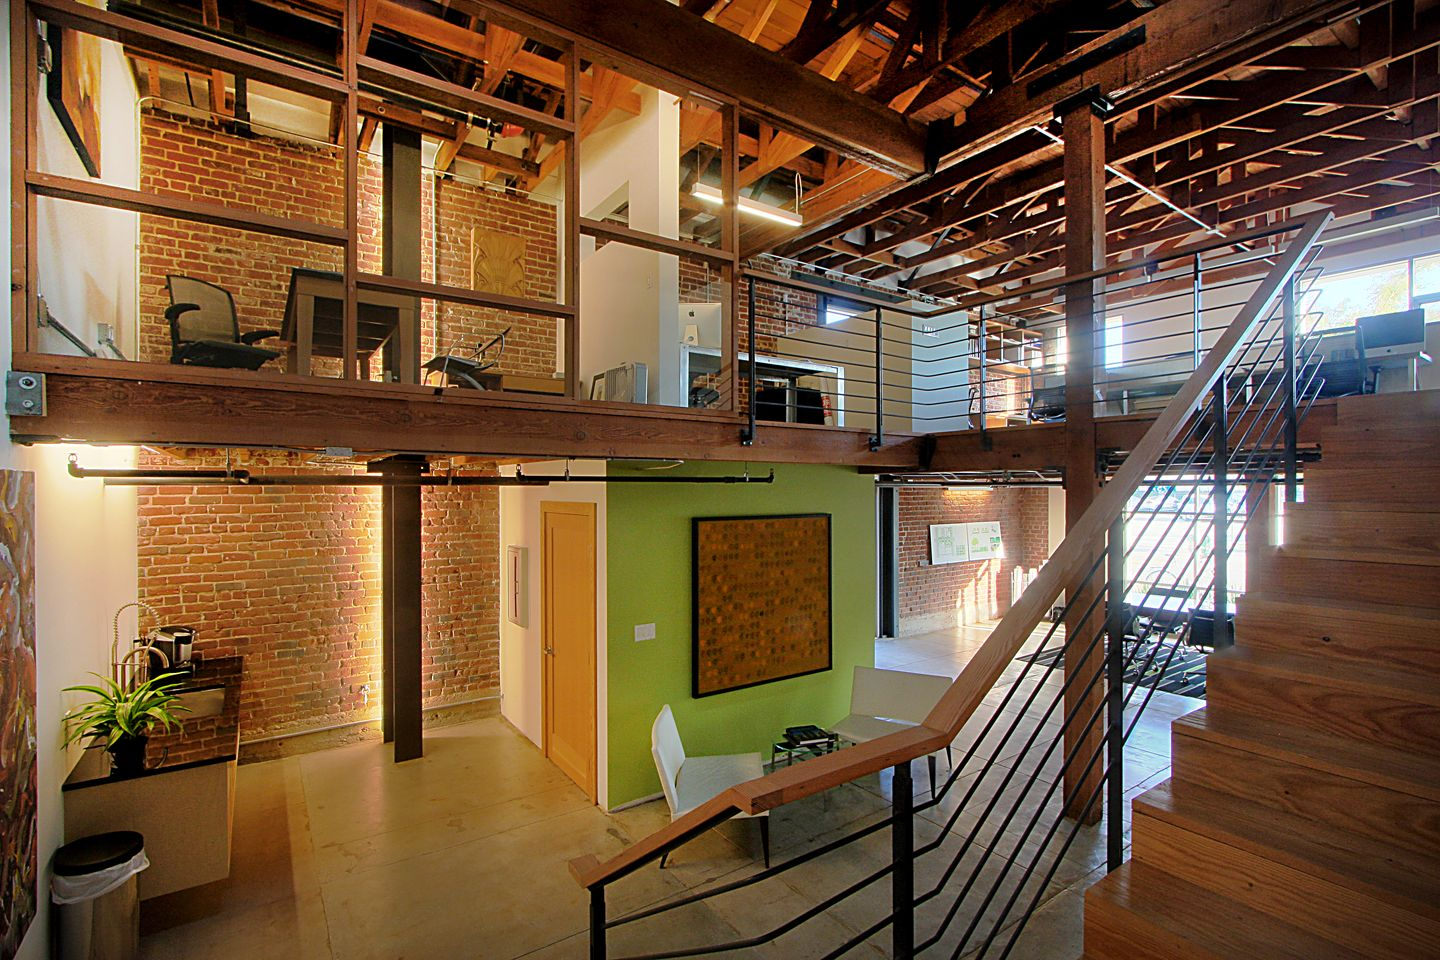 237705686556628764 on urban retail design loft interior